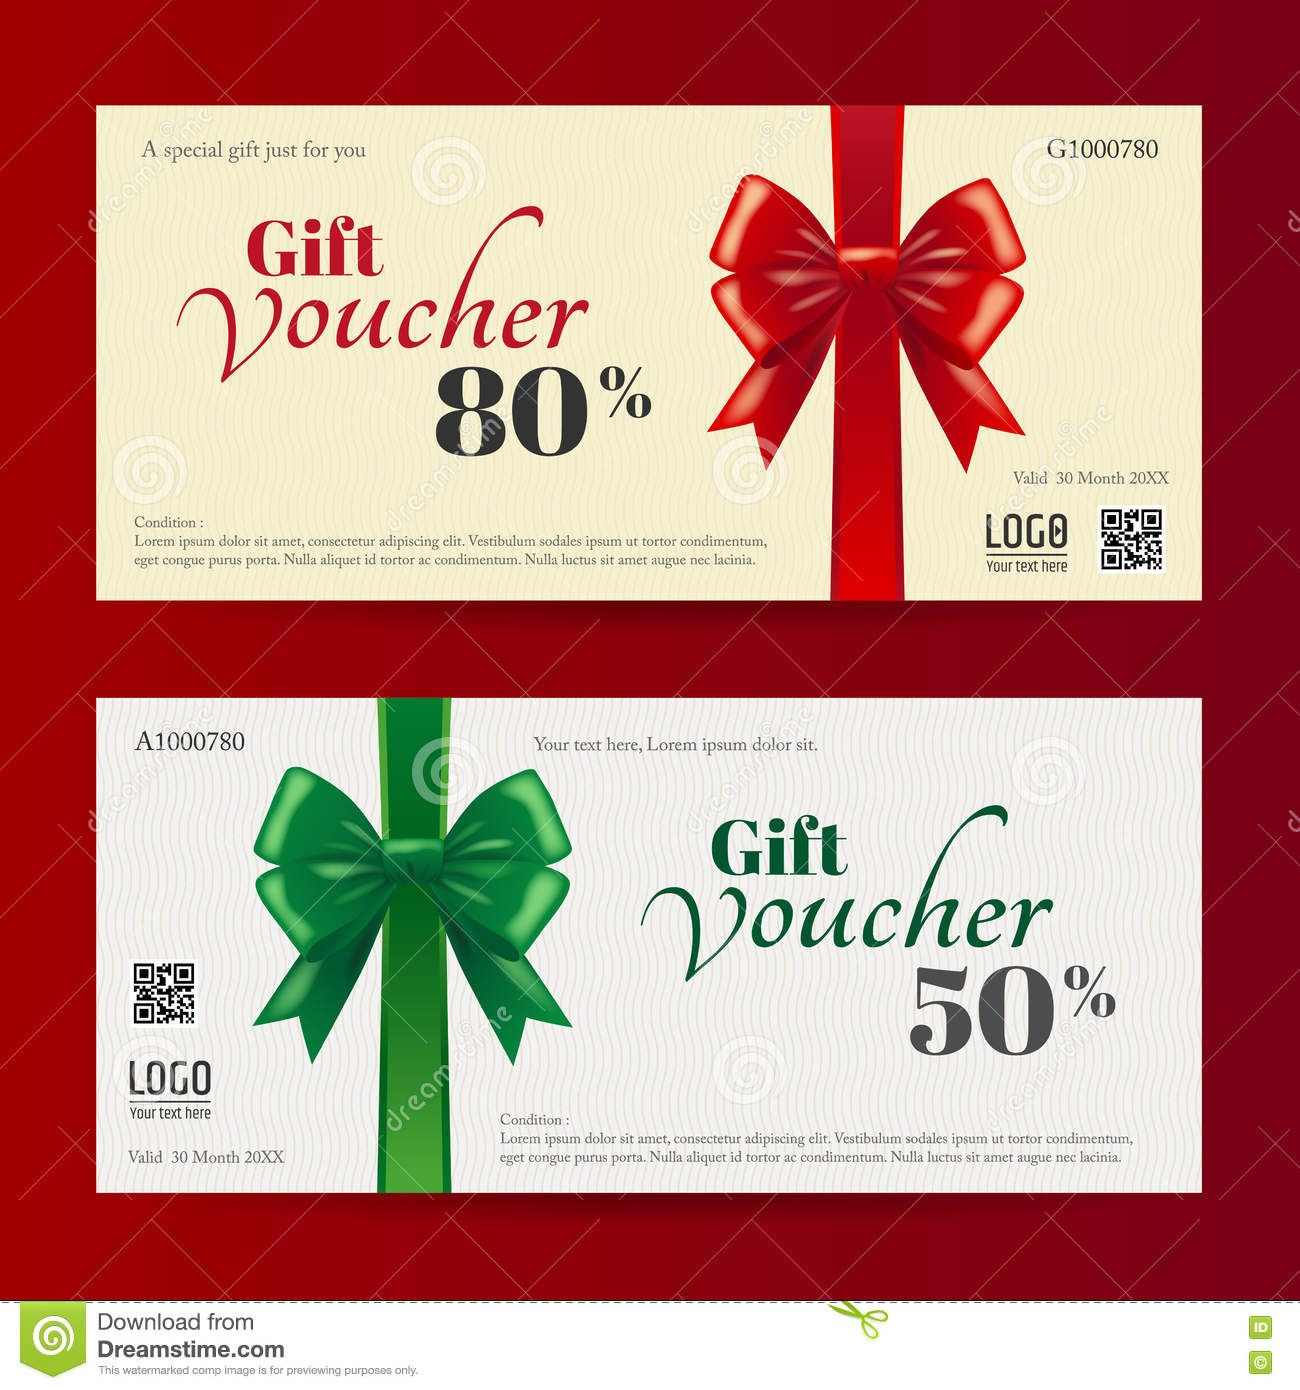 Elegant Christmas Gift Card Or Gift Voucher Template Stock Vector Throughout Free Christmas Gift Certificate Templates